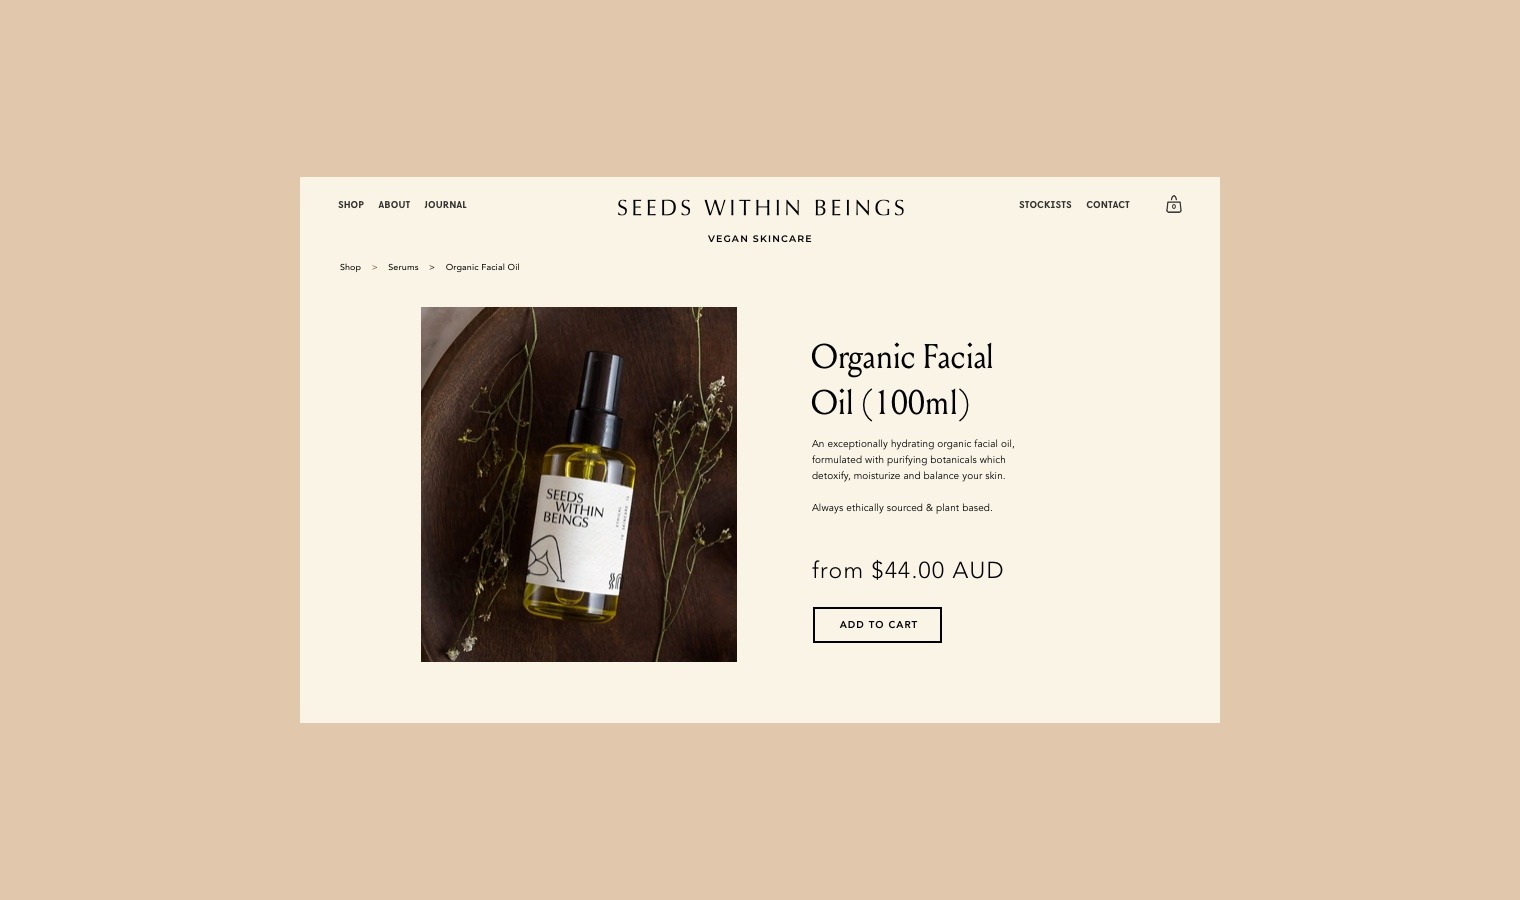 vegan-skincare-serum-oil-ethical-design-agency-sustainable-brands-graphic-designer-sydney-byron-bay-bondi-melbourne-branding.jpg